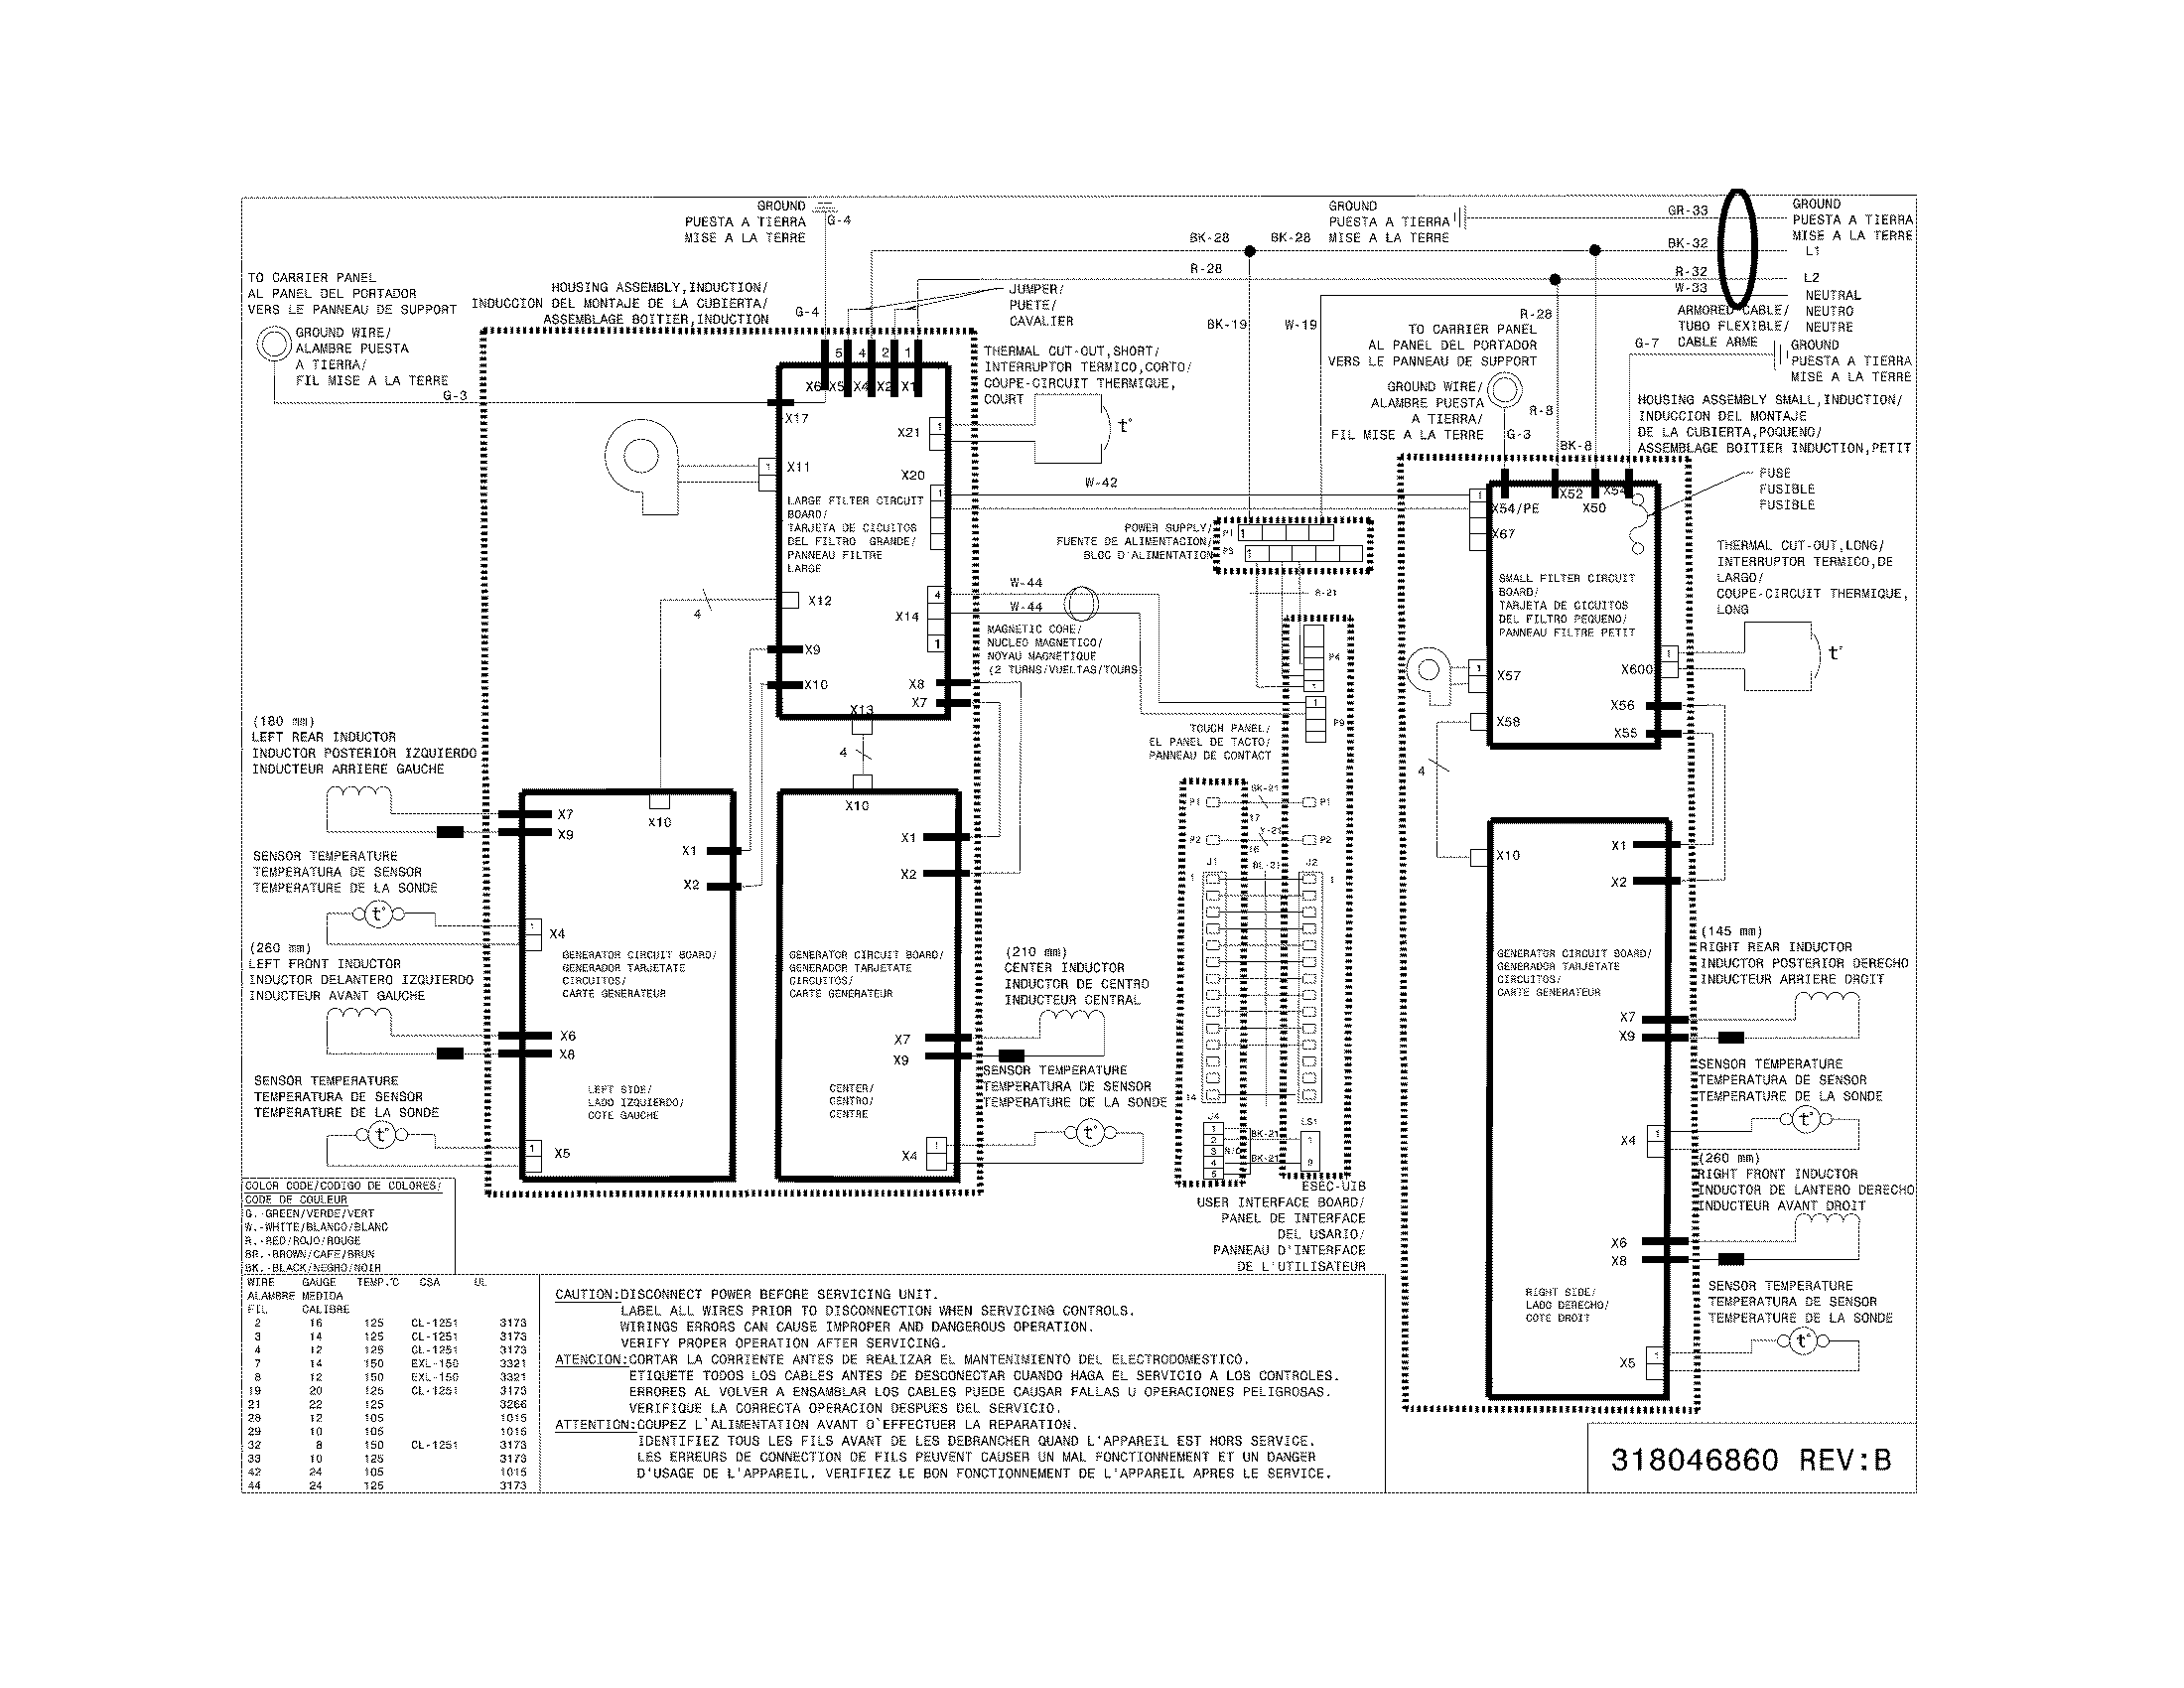 Wh5 120 L Ballast Wiring Diagram Fluorescent Light Ballast